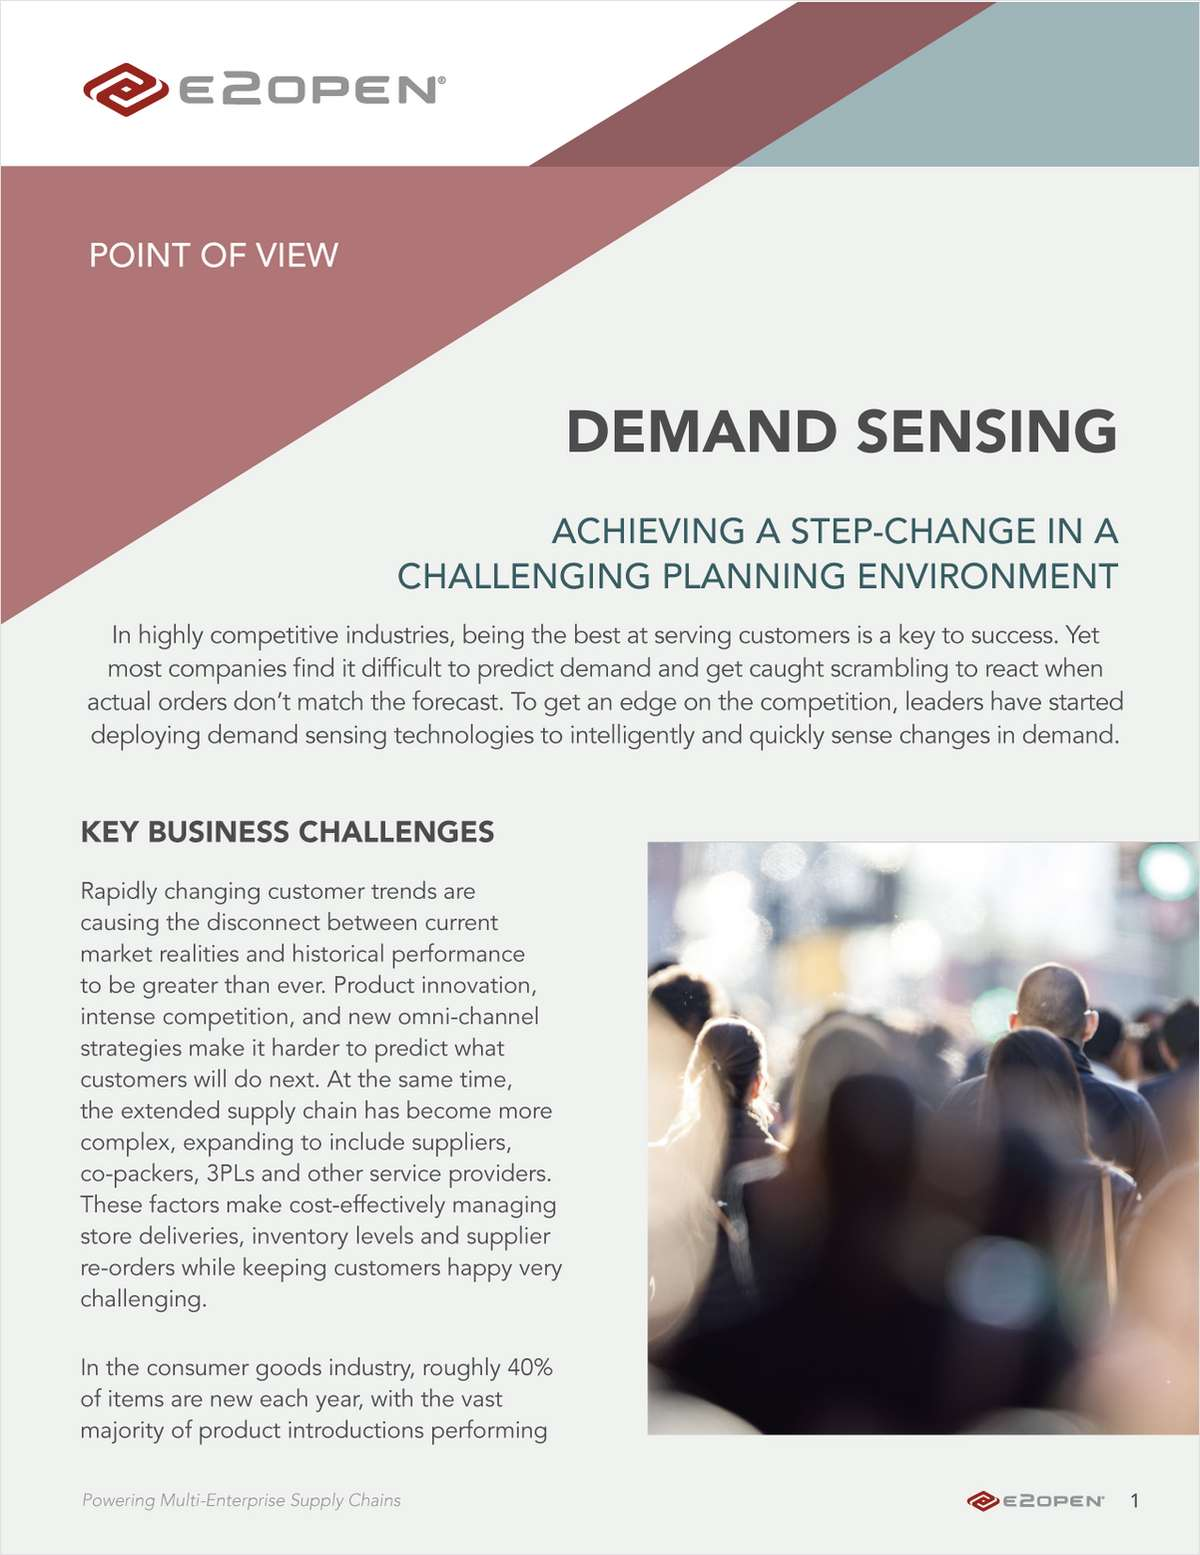 Demand Sensing: Achieving a step-change in a challenging planning environment